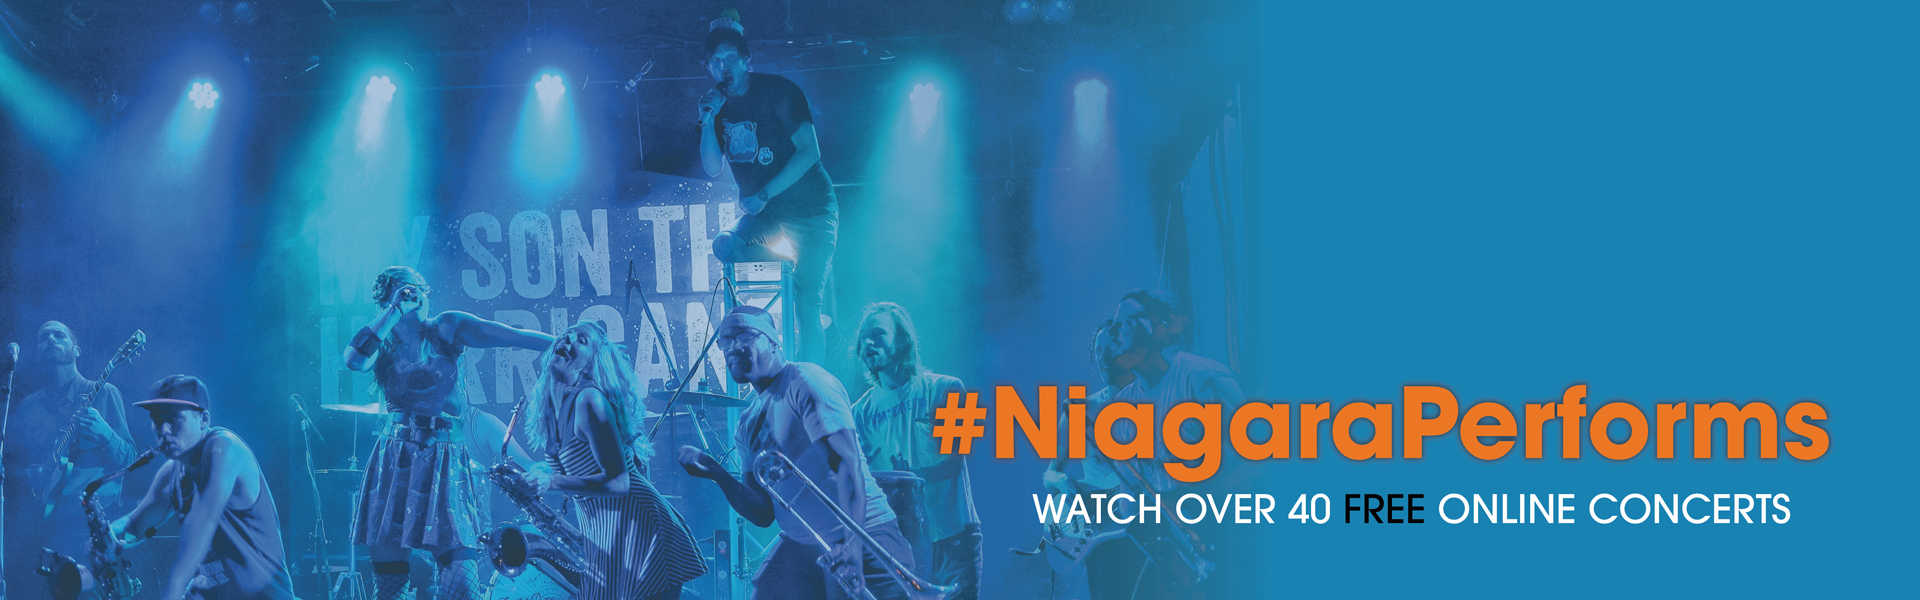 #NiagaraPerforms online concerts + events